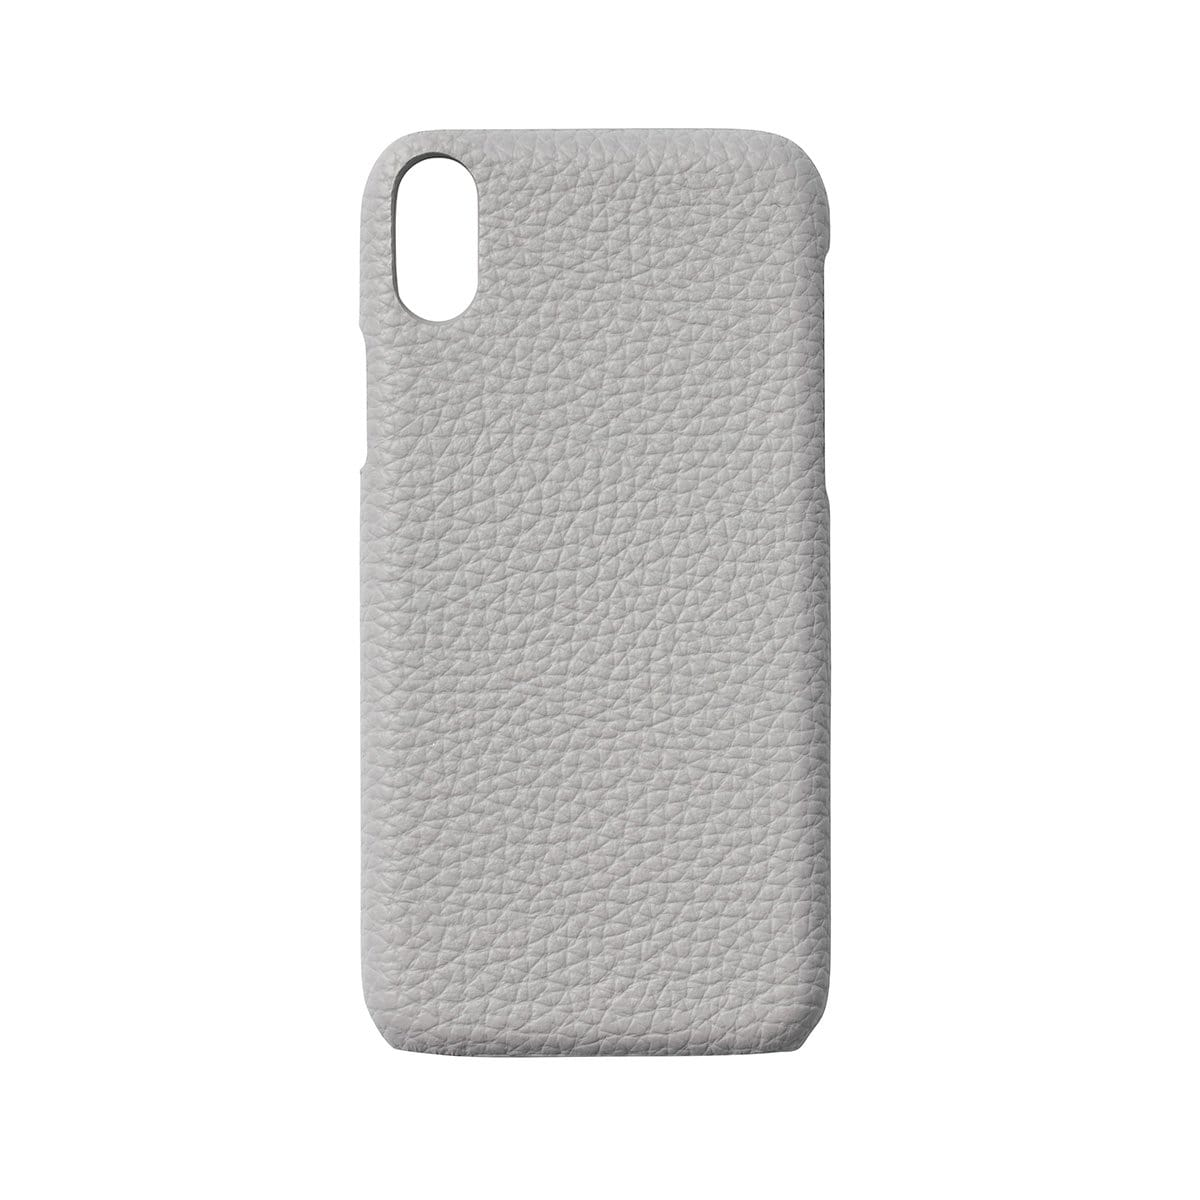 Parma Grey Phone Case (iPhone XR)